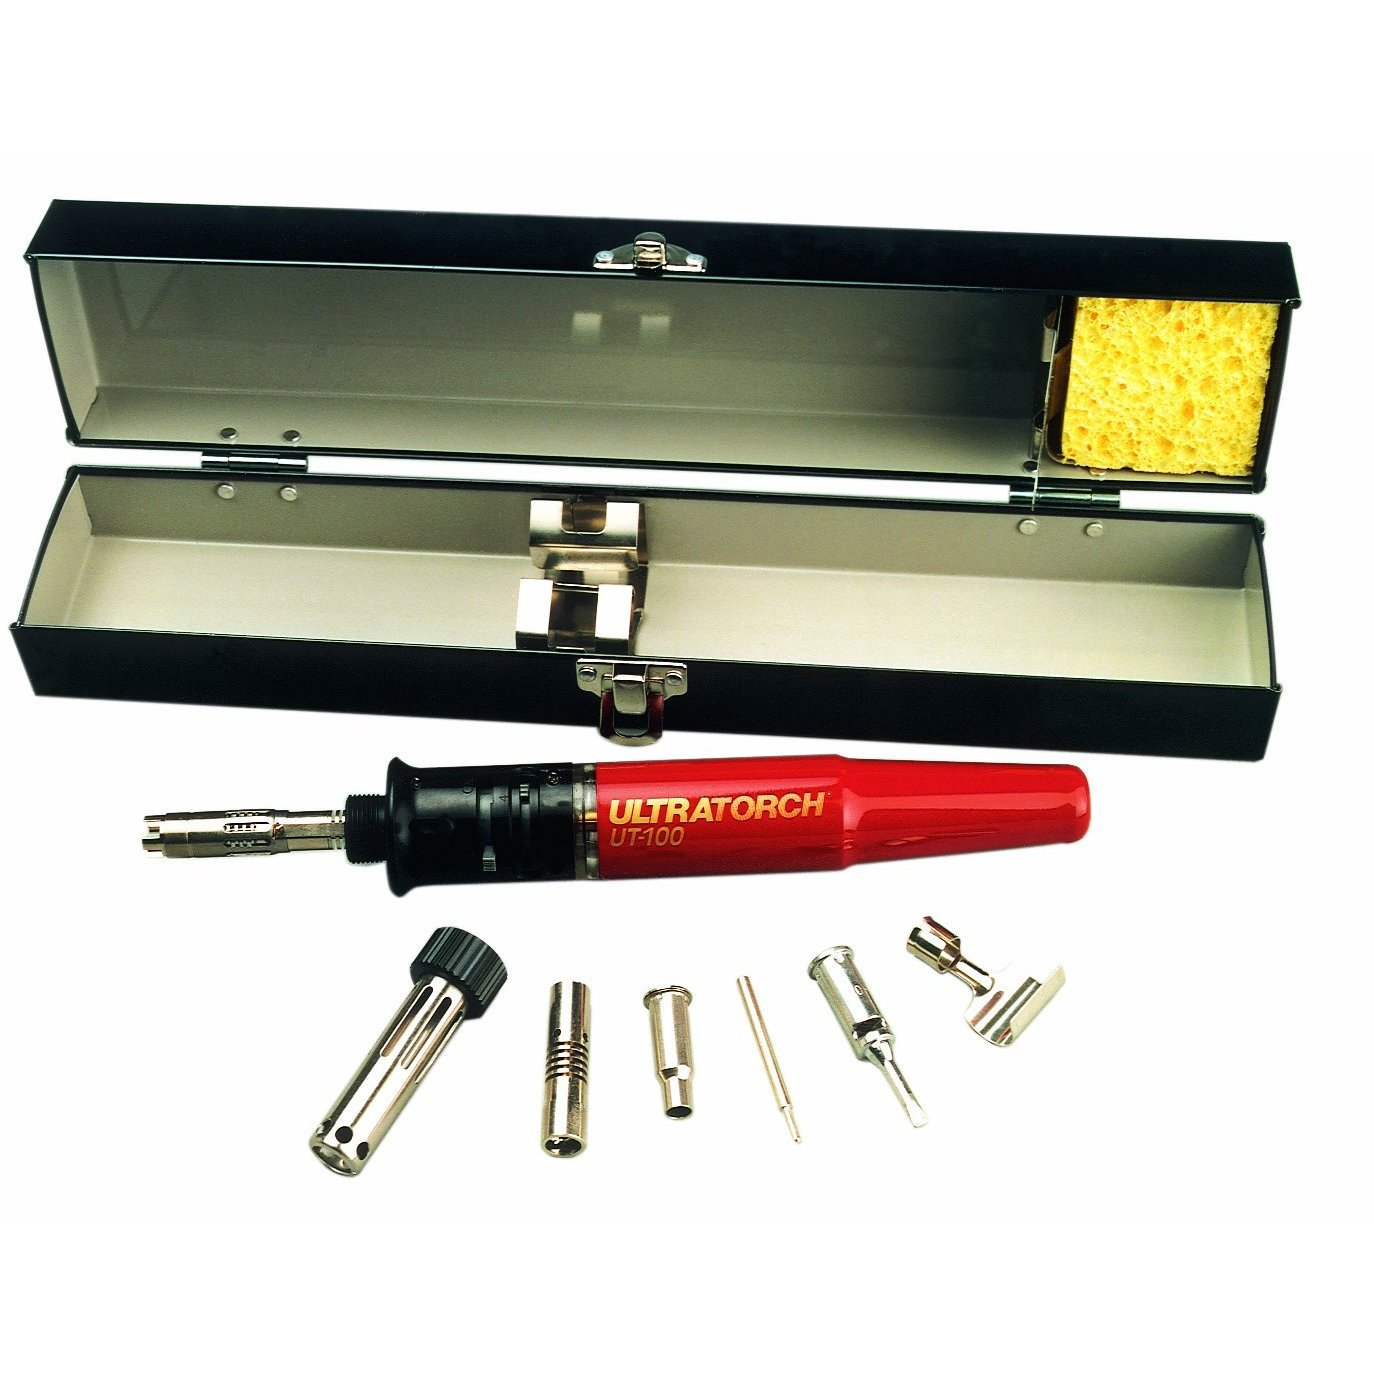 Master Appliance Ultratorch Series 3-in-1 Heat Tool with Metal Storage Case